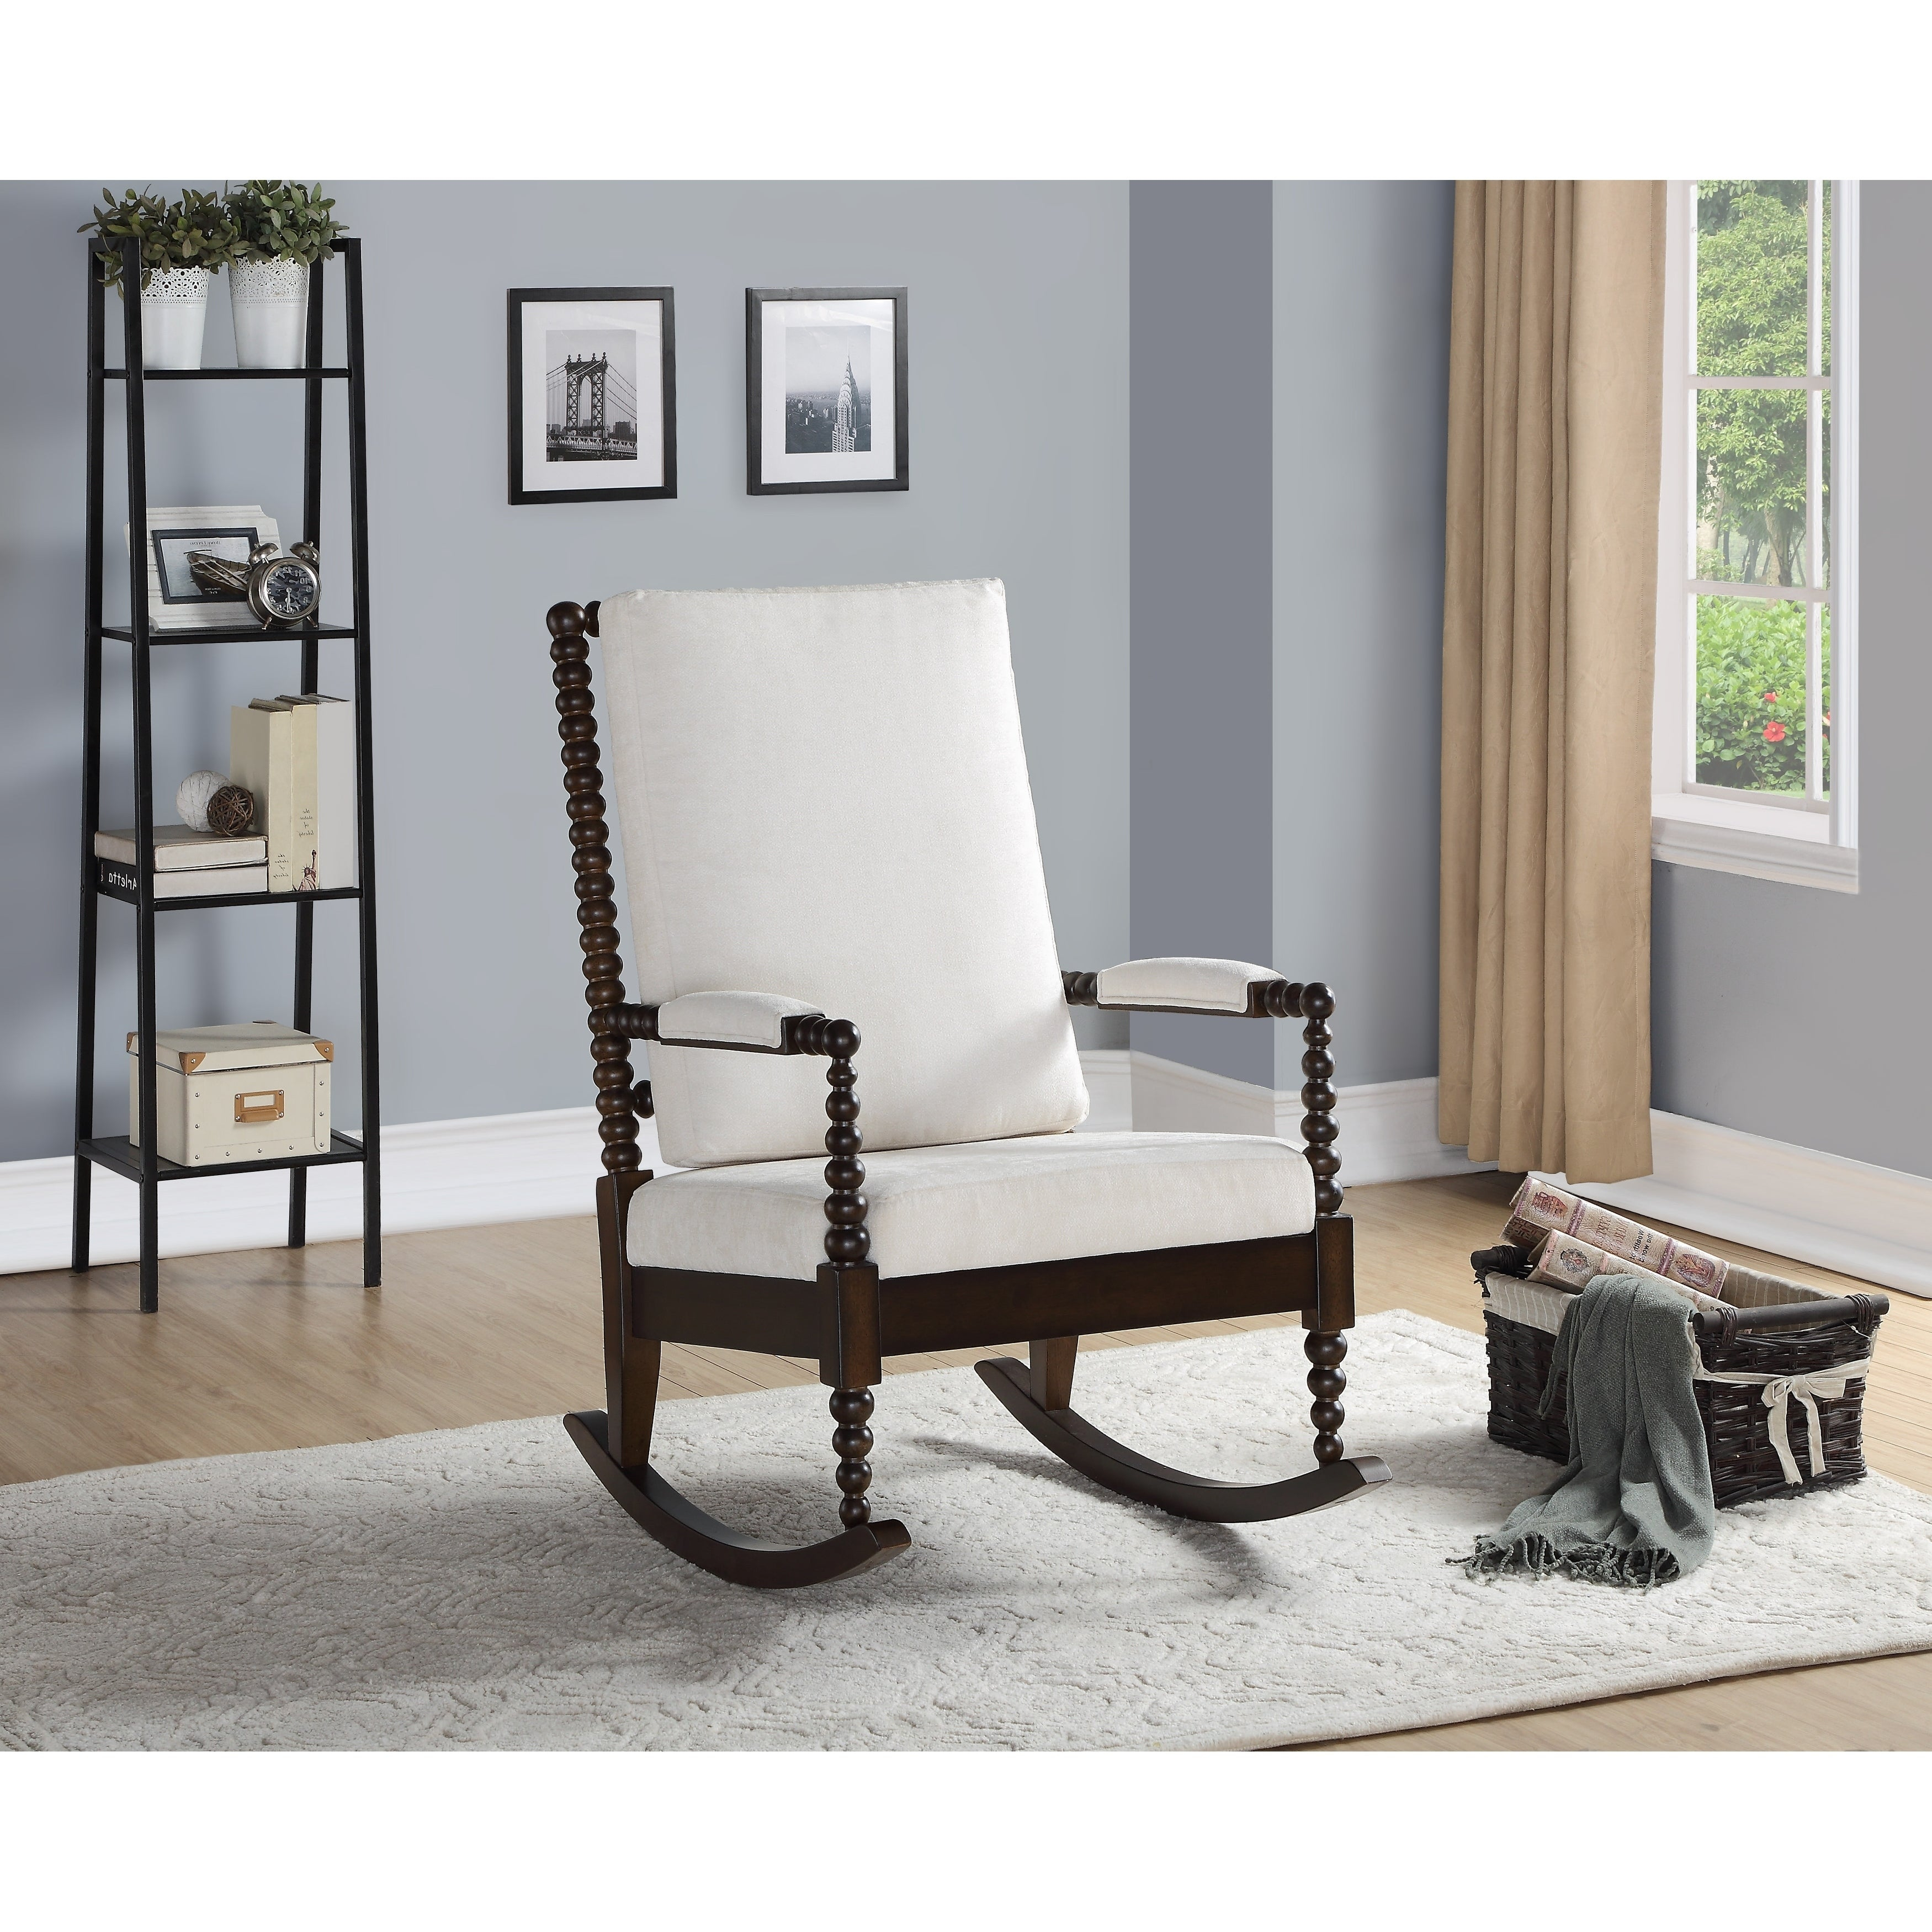 Copper Grove Drnis Rocking Chair With Cream Fabric And Walnut Wood Frame Within Antique Transitional Warm Oak Rocking Chairs (View 14 of 20)